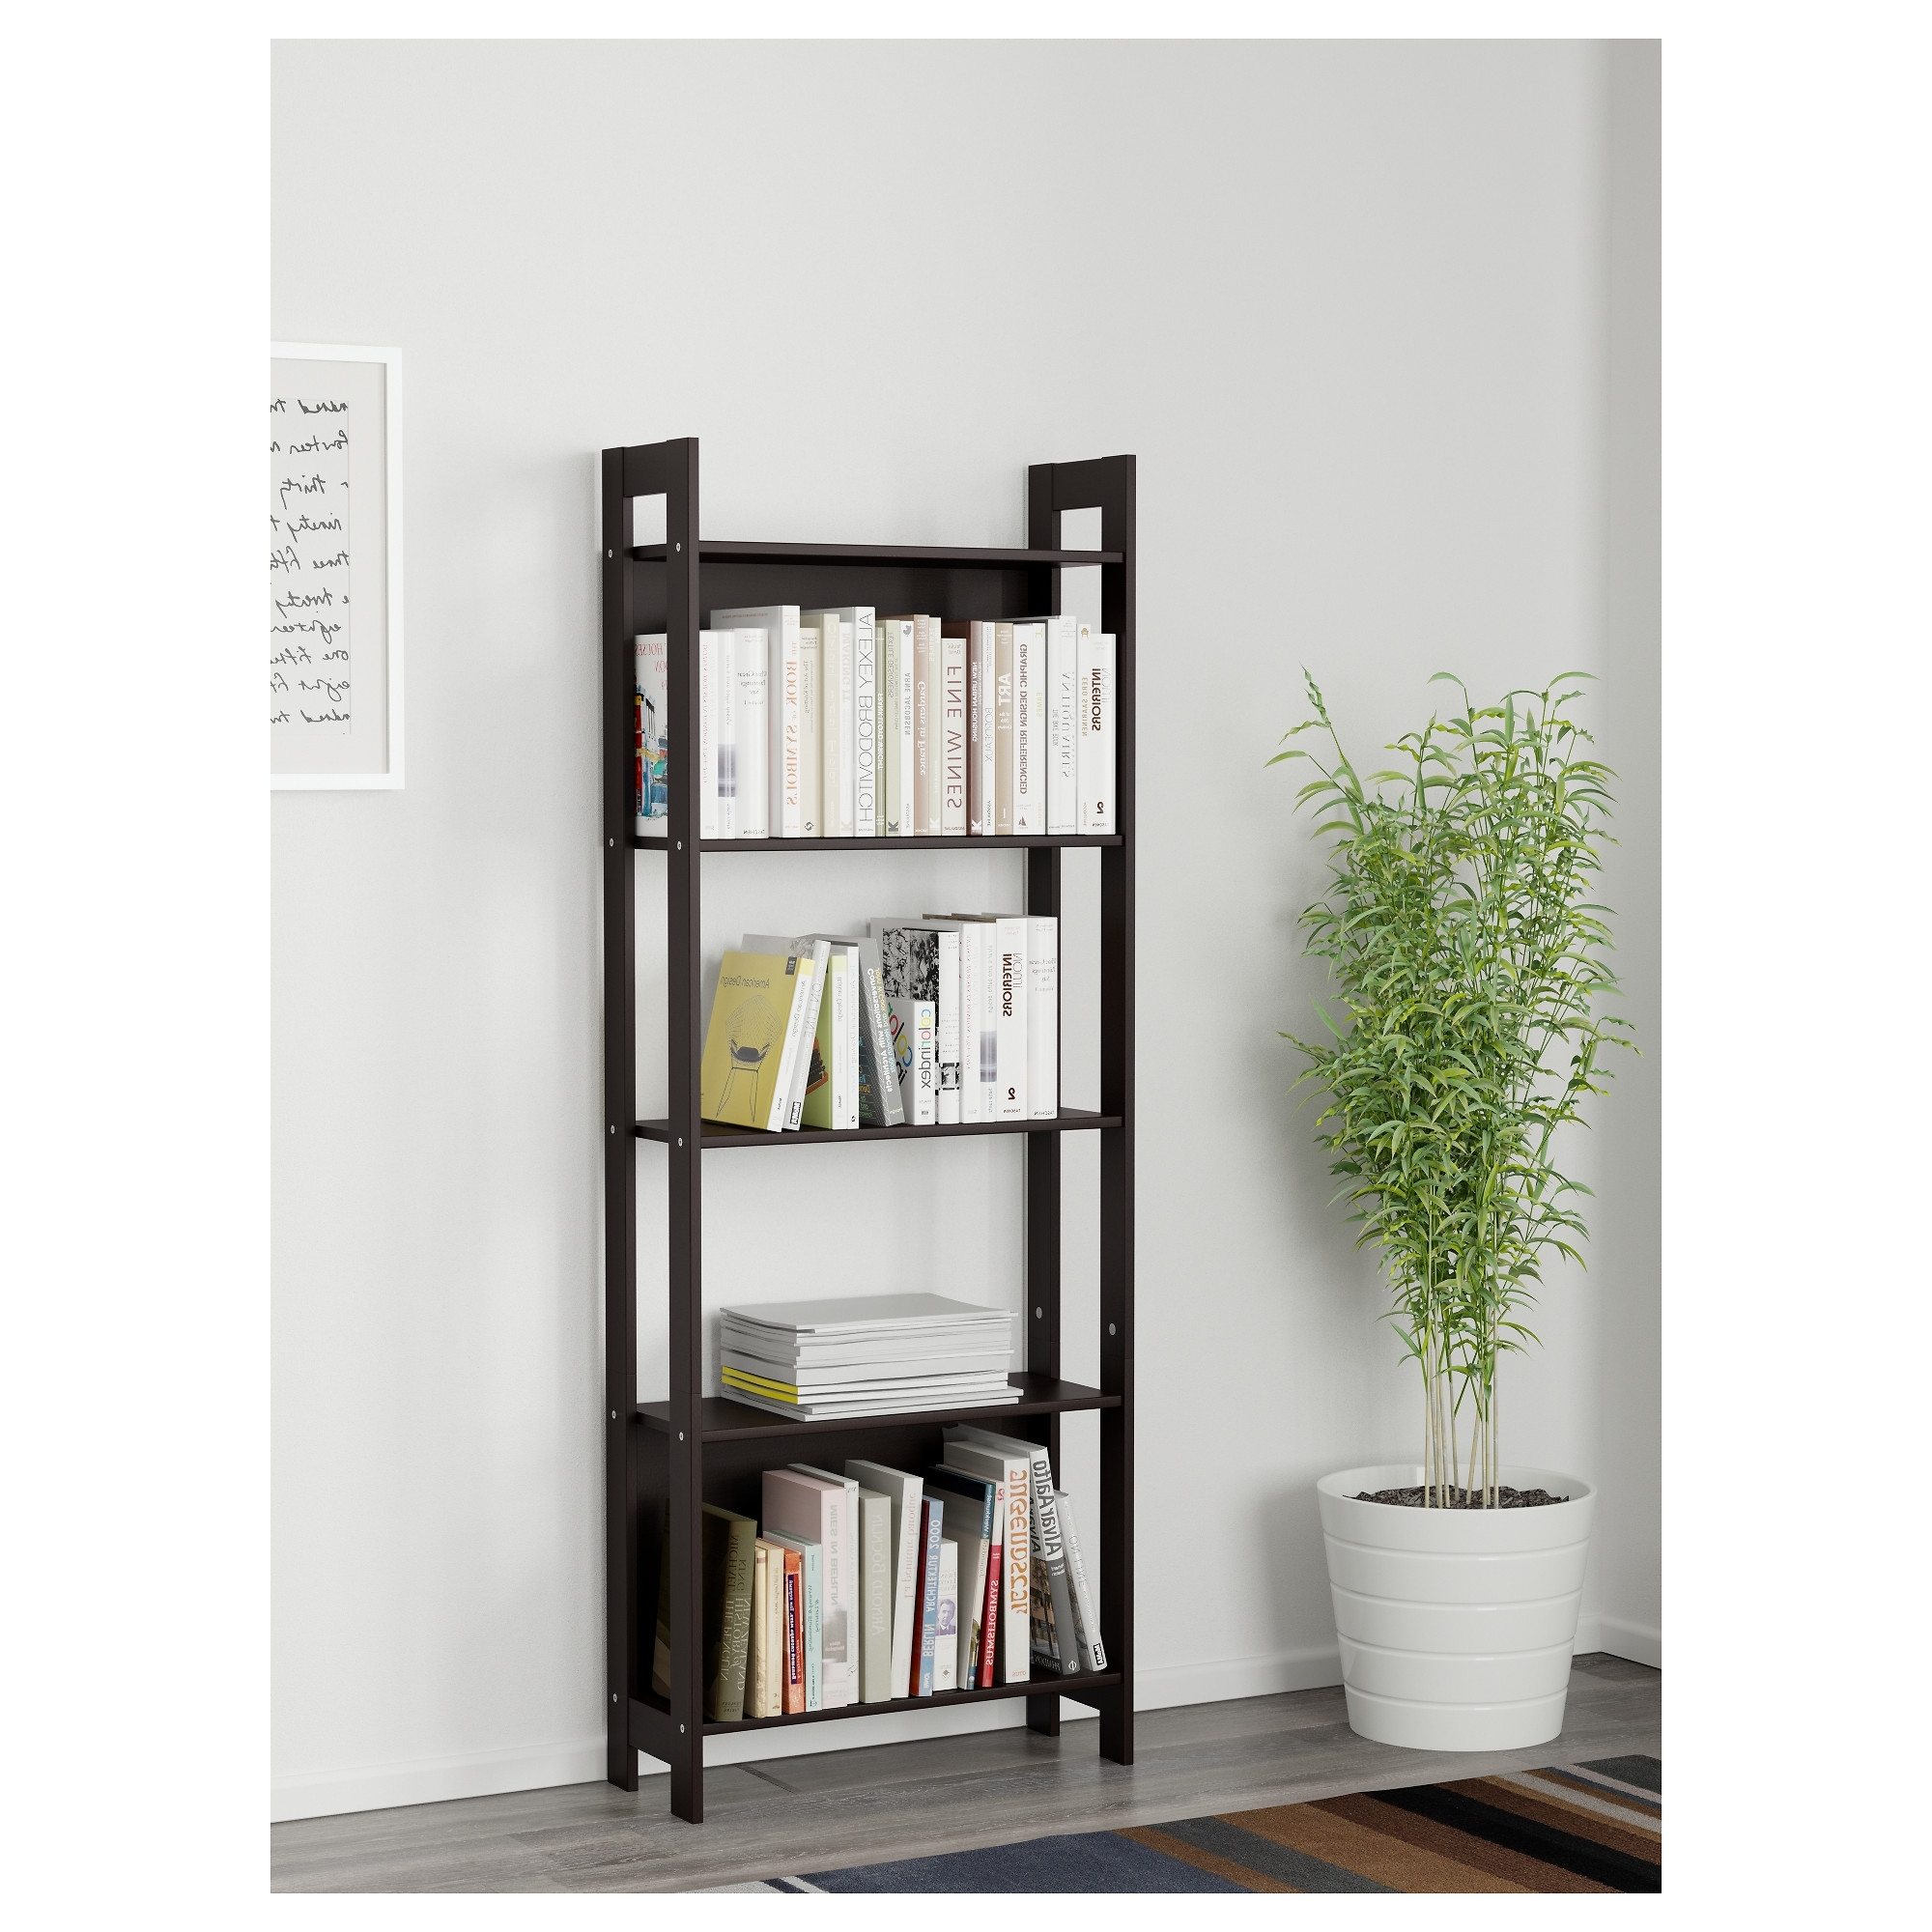 Laiva Regal Laiva Bookcase Elitflat